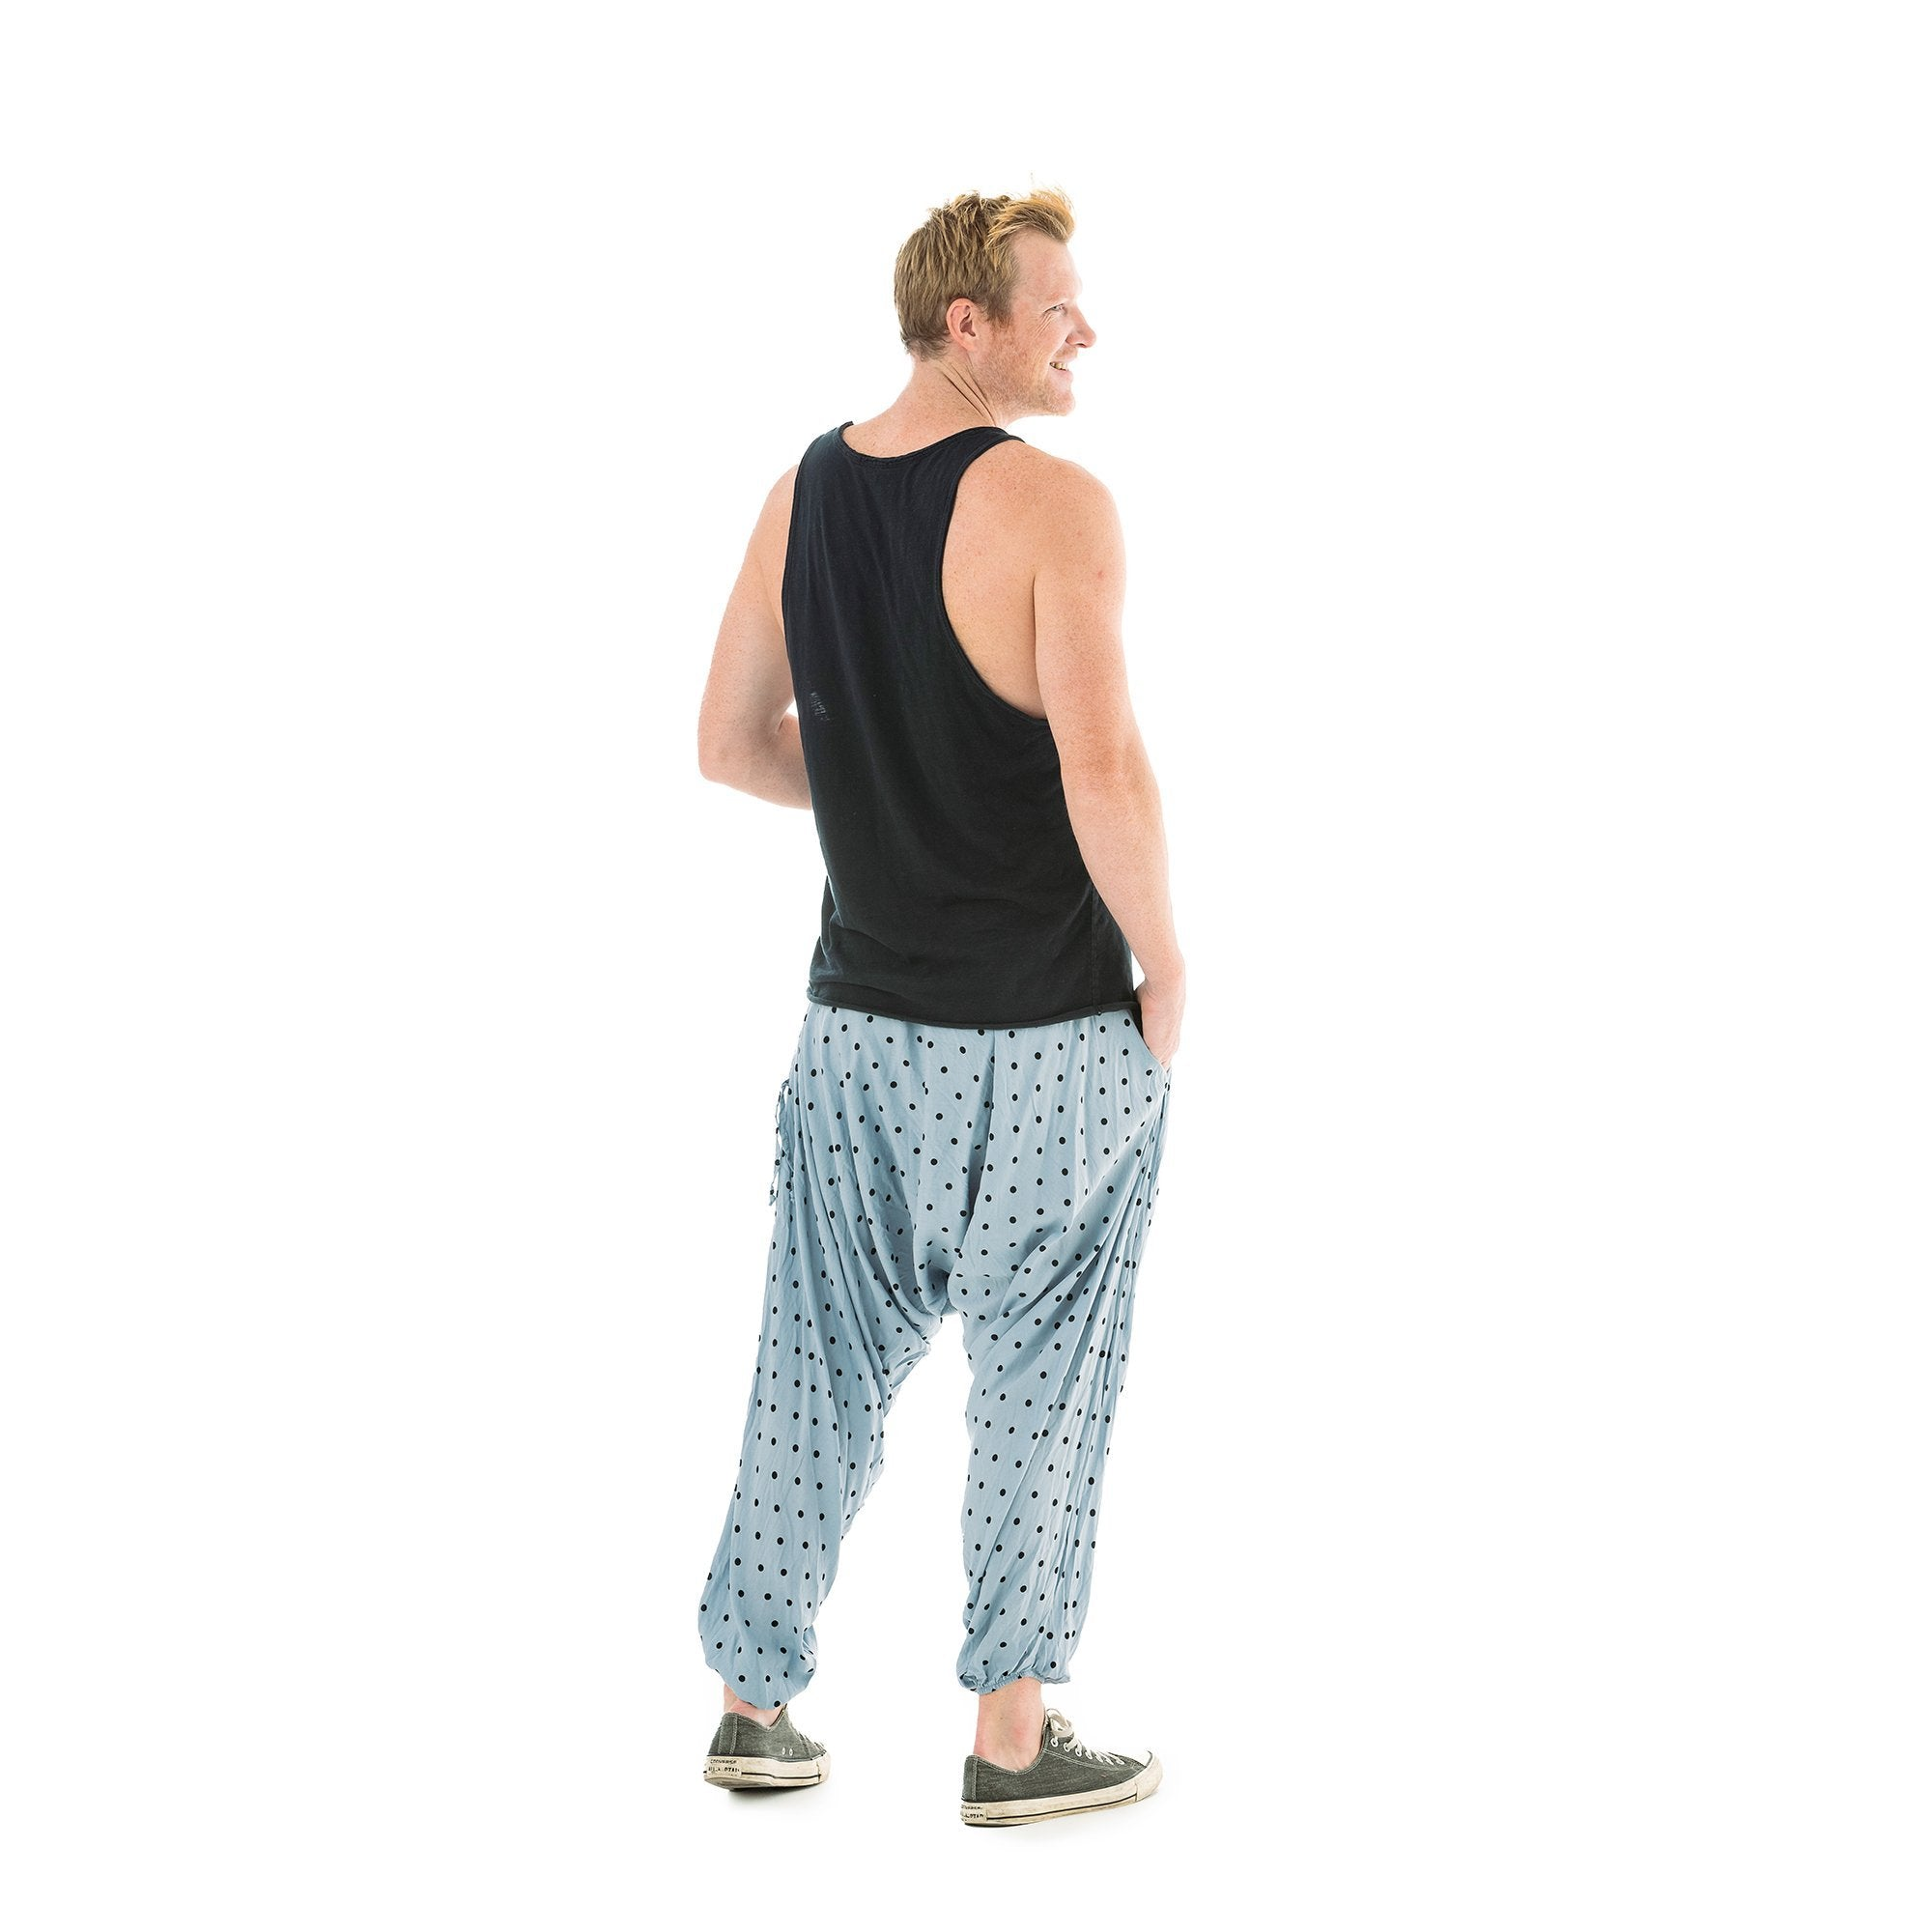 BLM Savannah Pants - Buddha Pants®